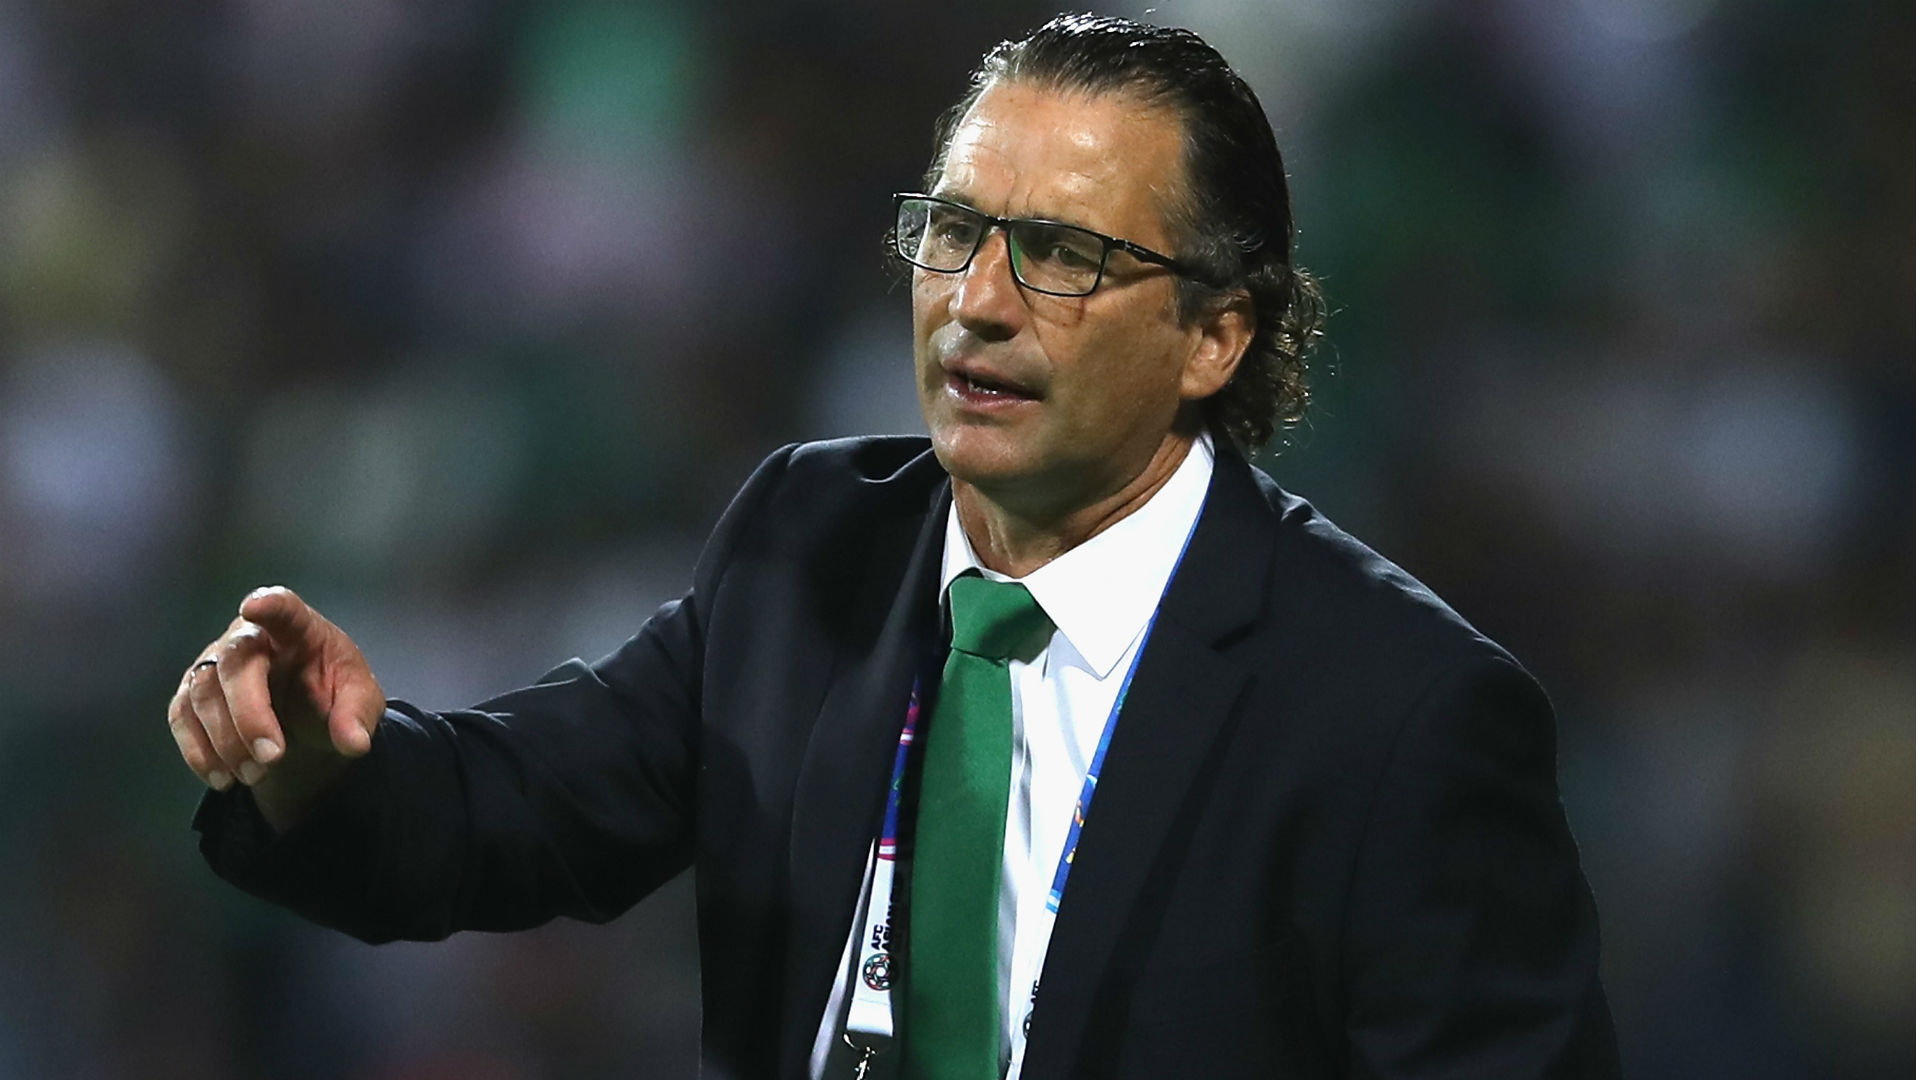 Saudi Arabia beat North Korea 4-0 last time out, and coach Juan Antonio Pizzi feels more performances like that could win them the title.